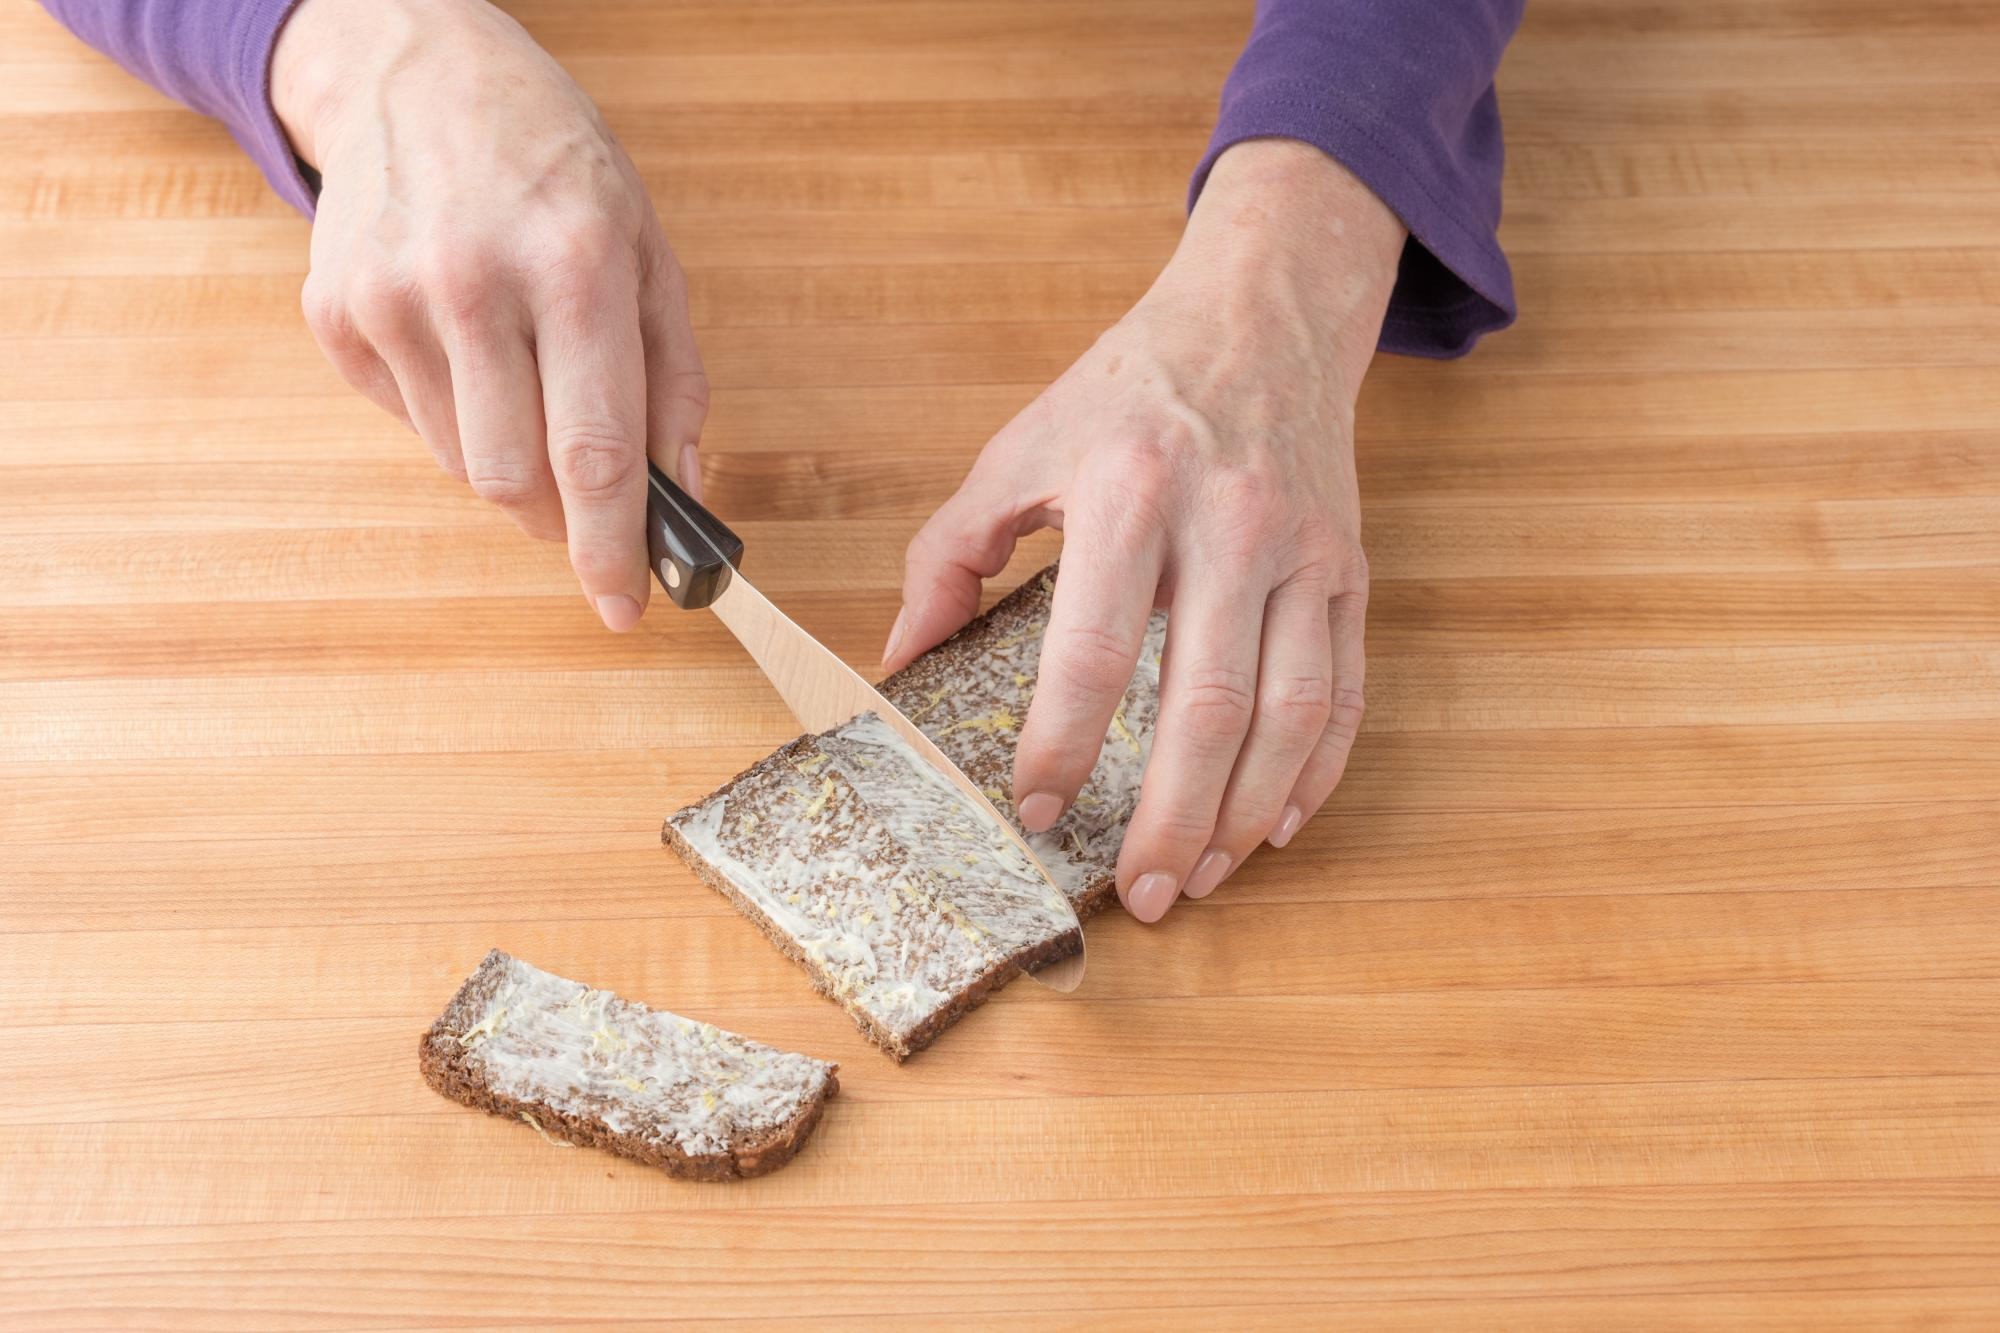 Using a Spatula spreader to cut the bread into appropriately sized slices